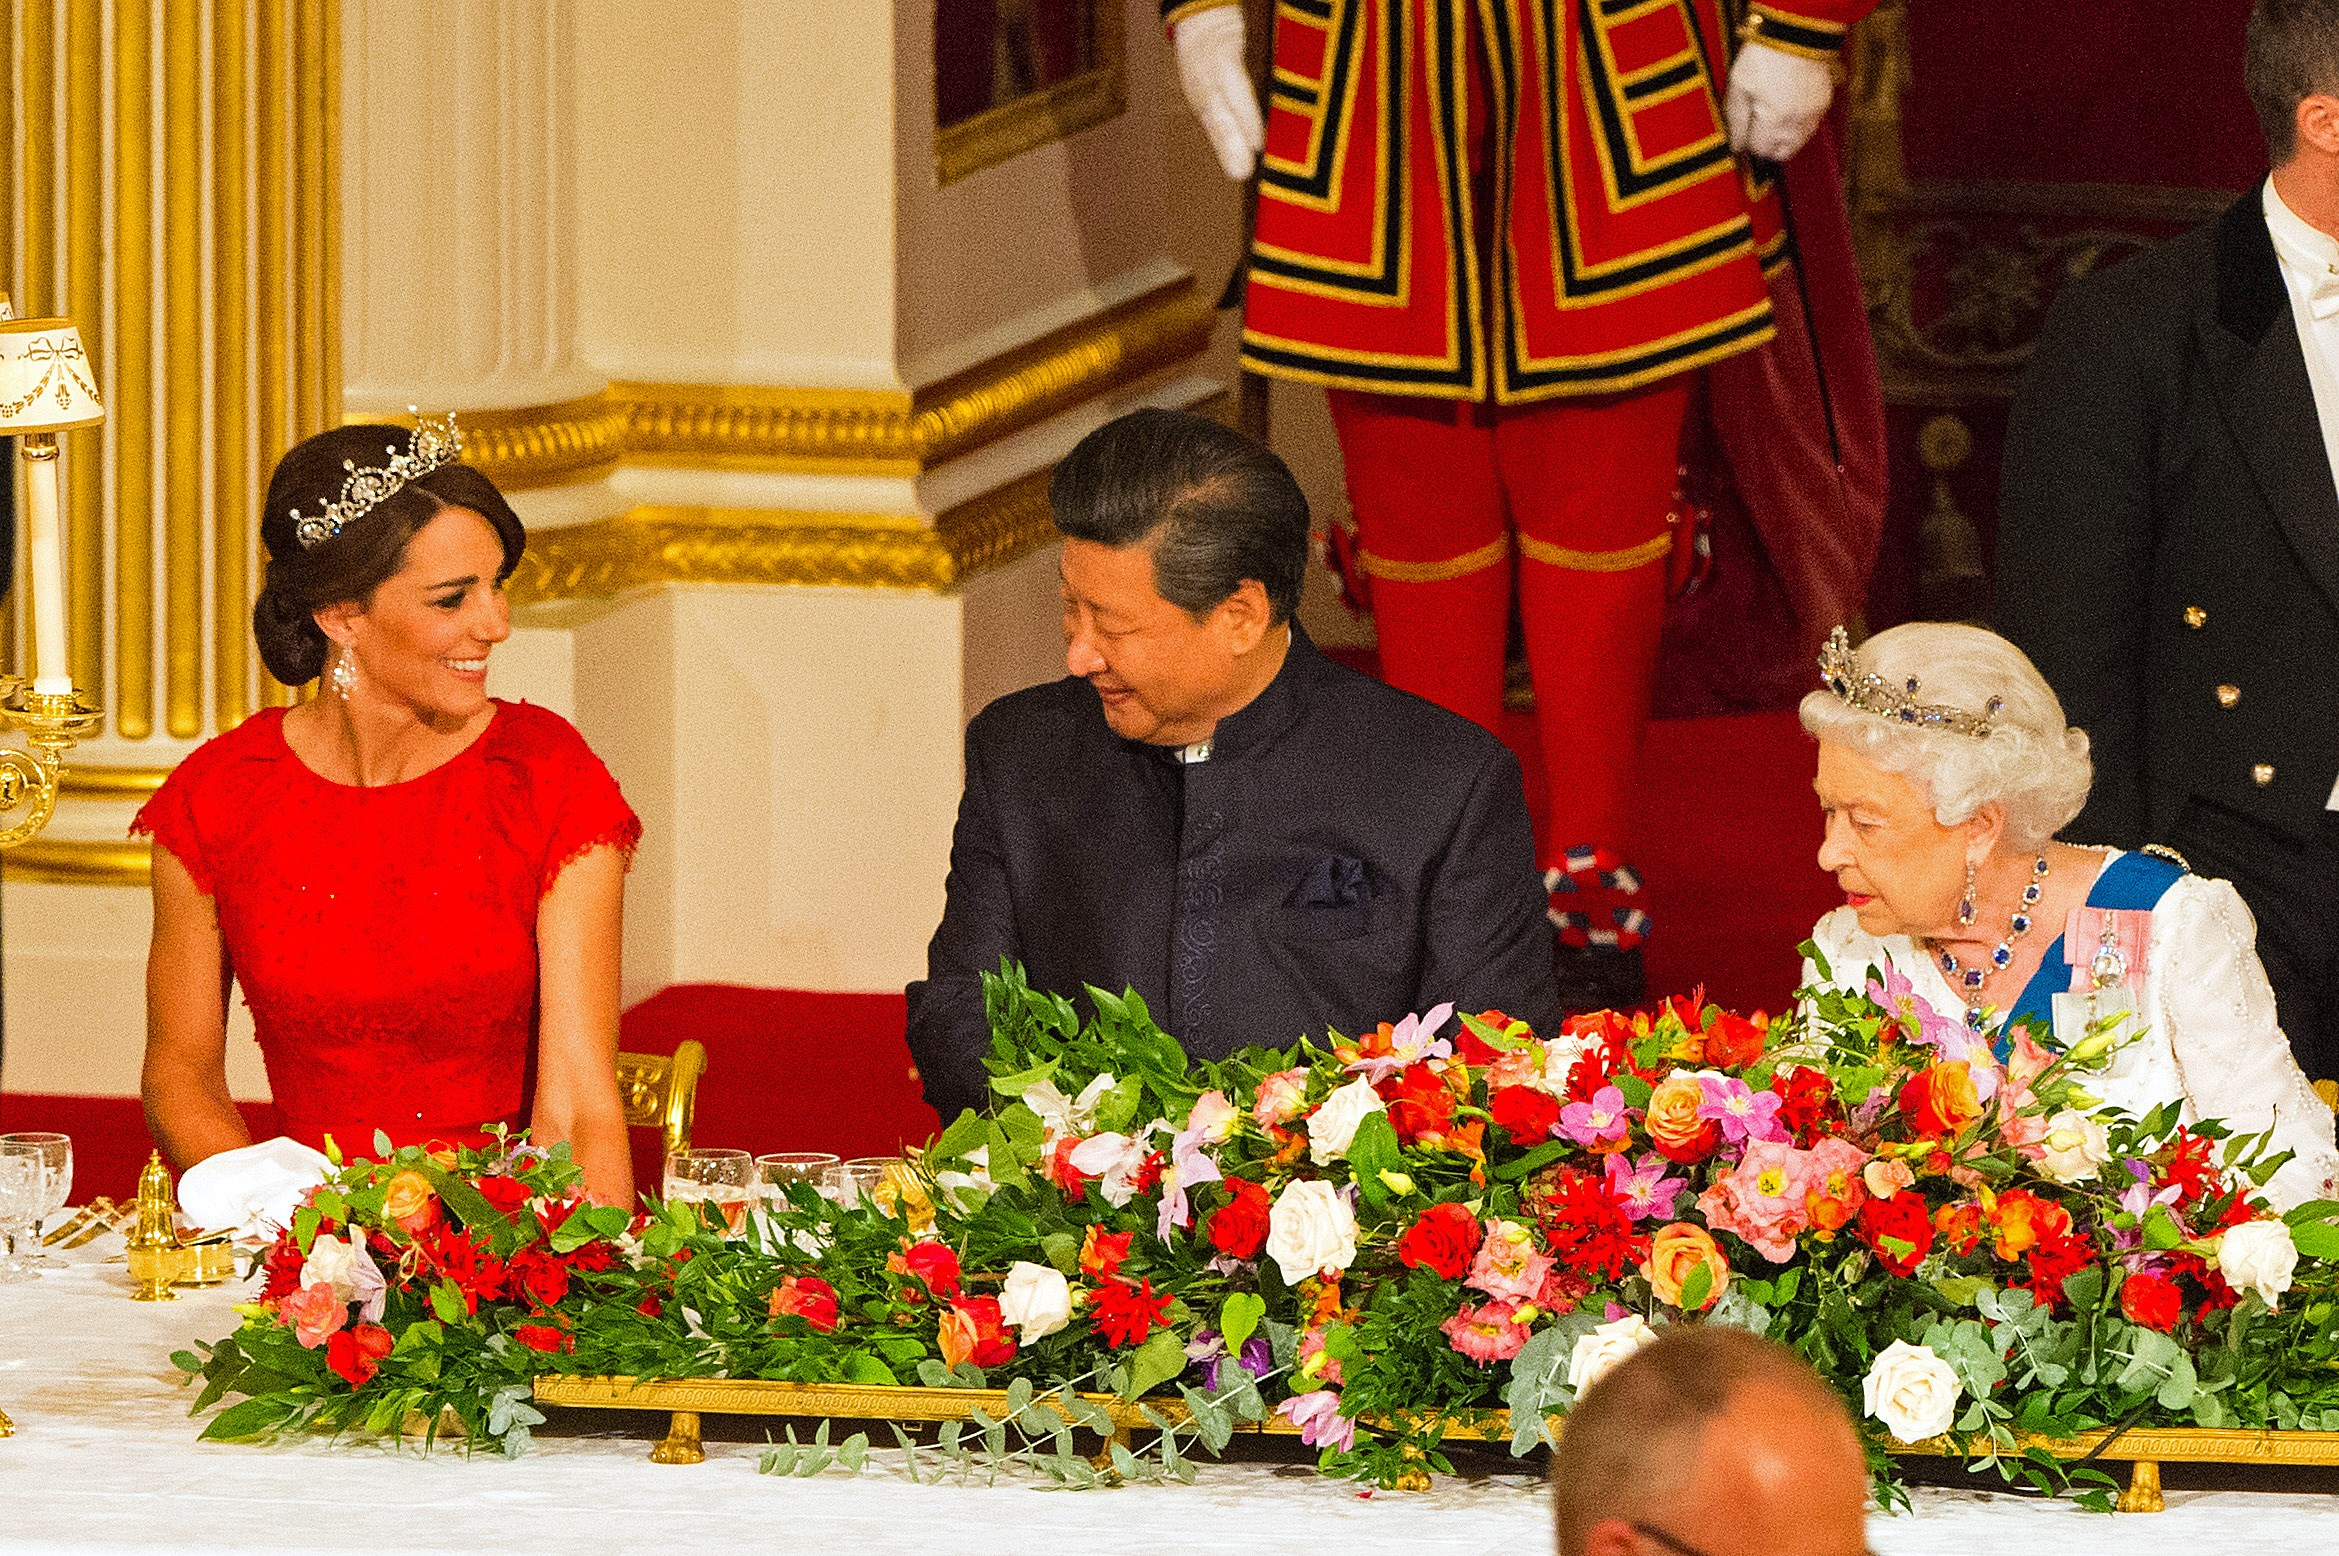 Chinese President Xi Jinping (C) sits between Britain's Catherine, Duchess of Cambridge, (L) and Britain's Queen Elizabeth II during State Banquet at Buckingham Palace in London, on October 20, 2015, on the first official day of Xi's state visit.